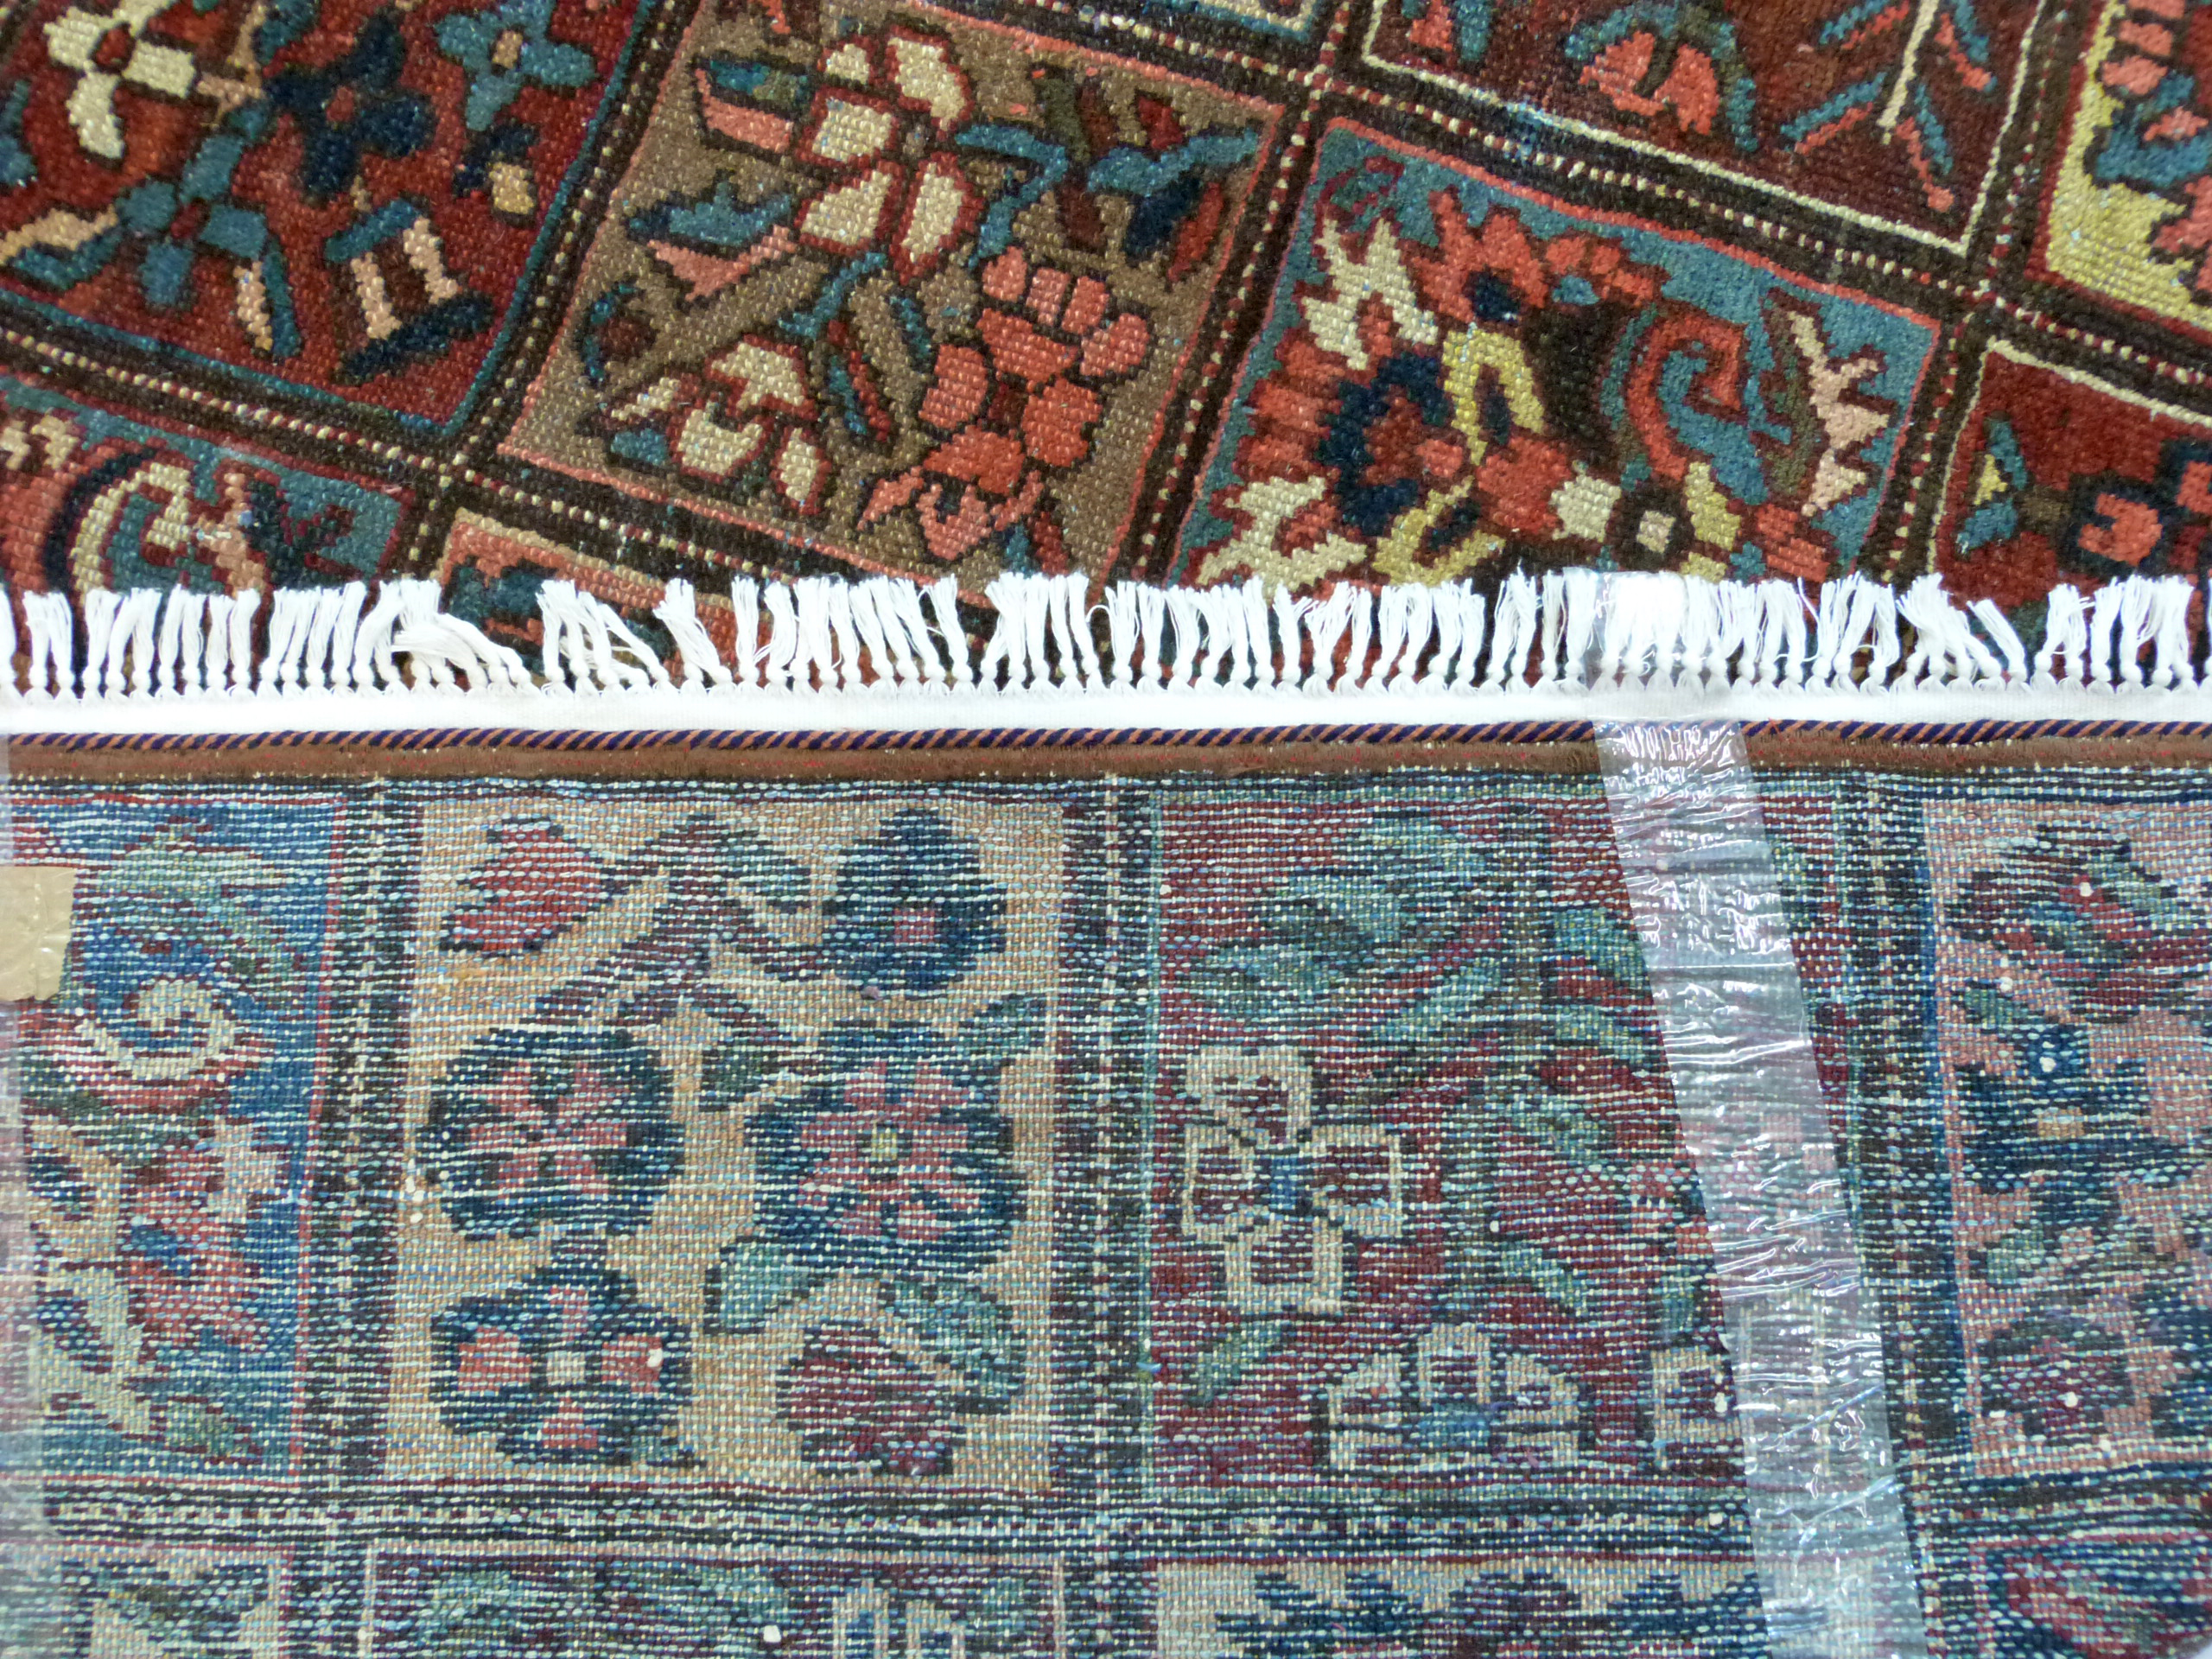 Vintage Persian Baktia Carpet, with all-over panelled design 260cm x 167cm approximately - Image 6 of 7